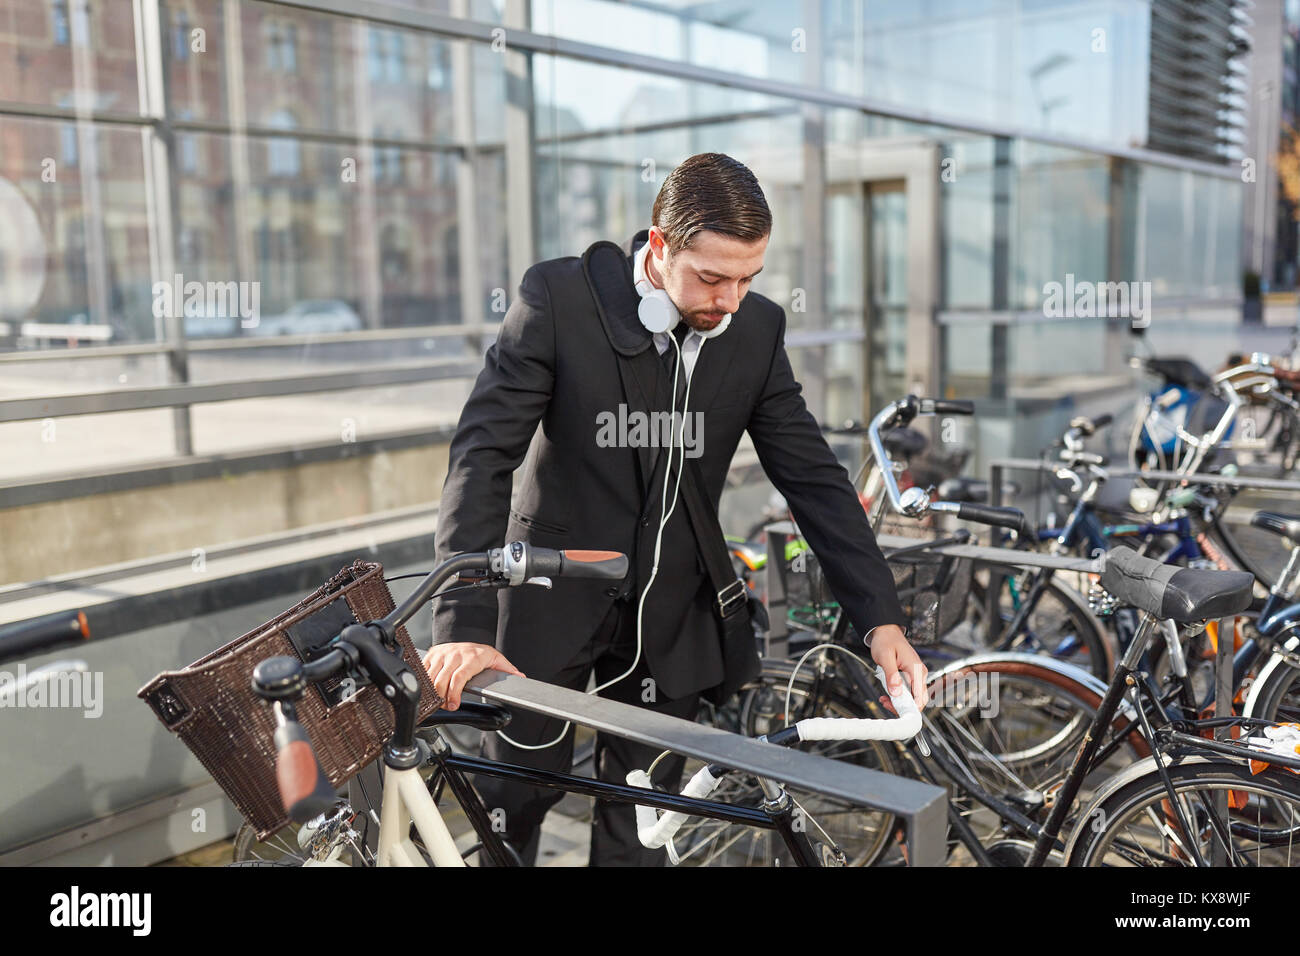 Man as a commuter in front of his bike at the bike rack - Stock Image